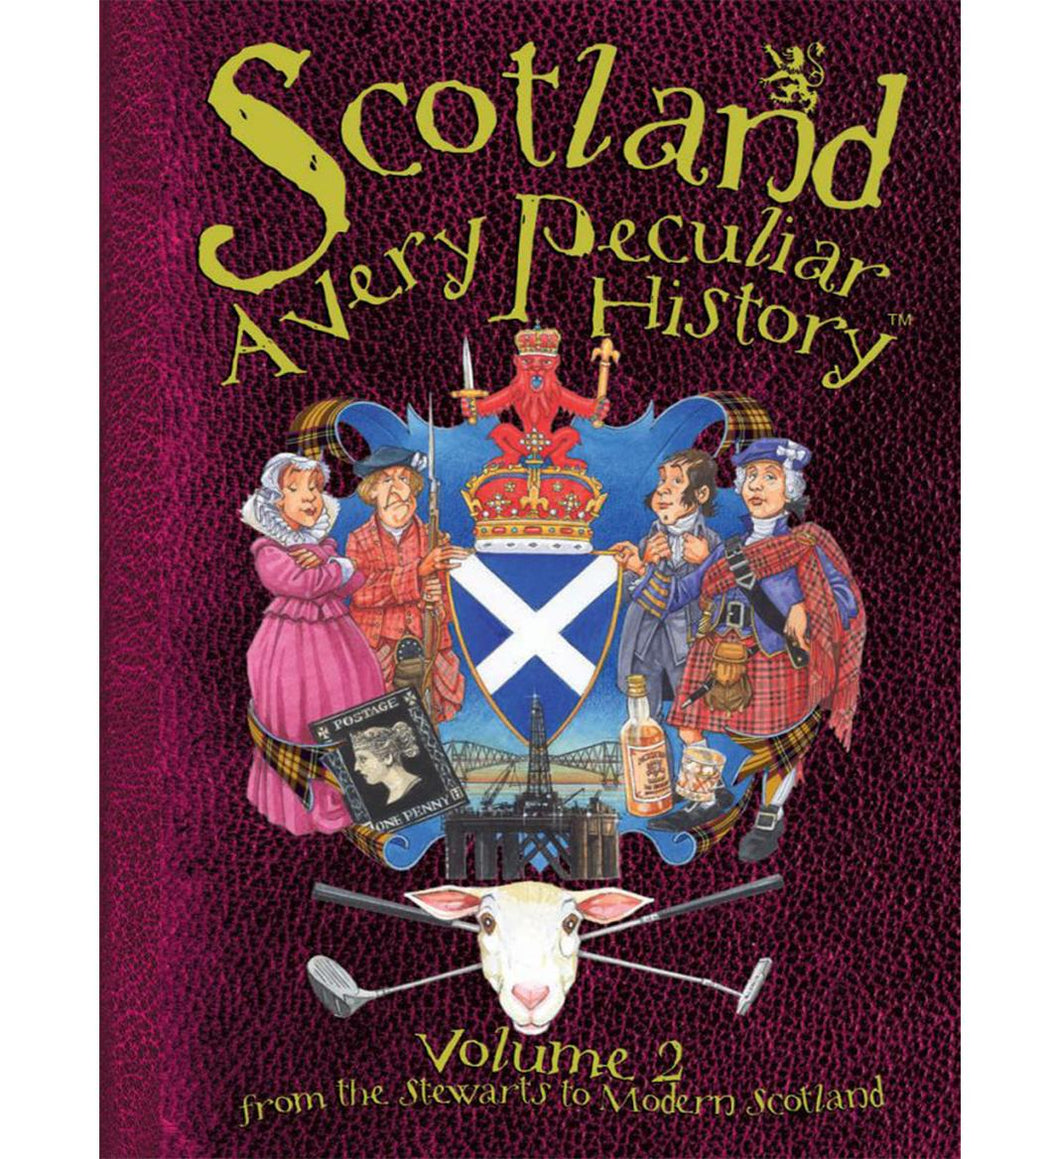 Scotland- A Very Peculiar History Volume 2